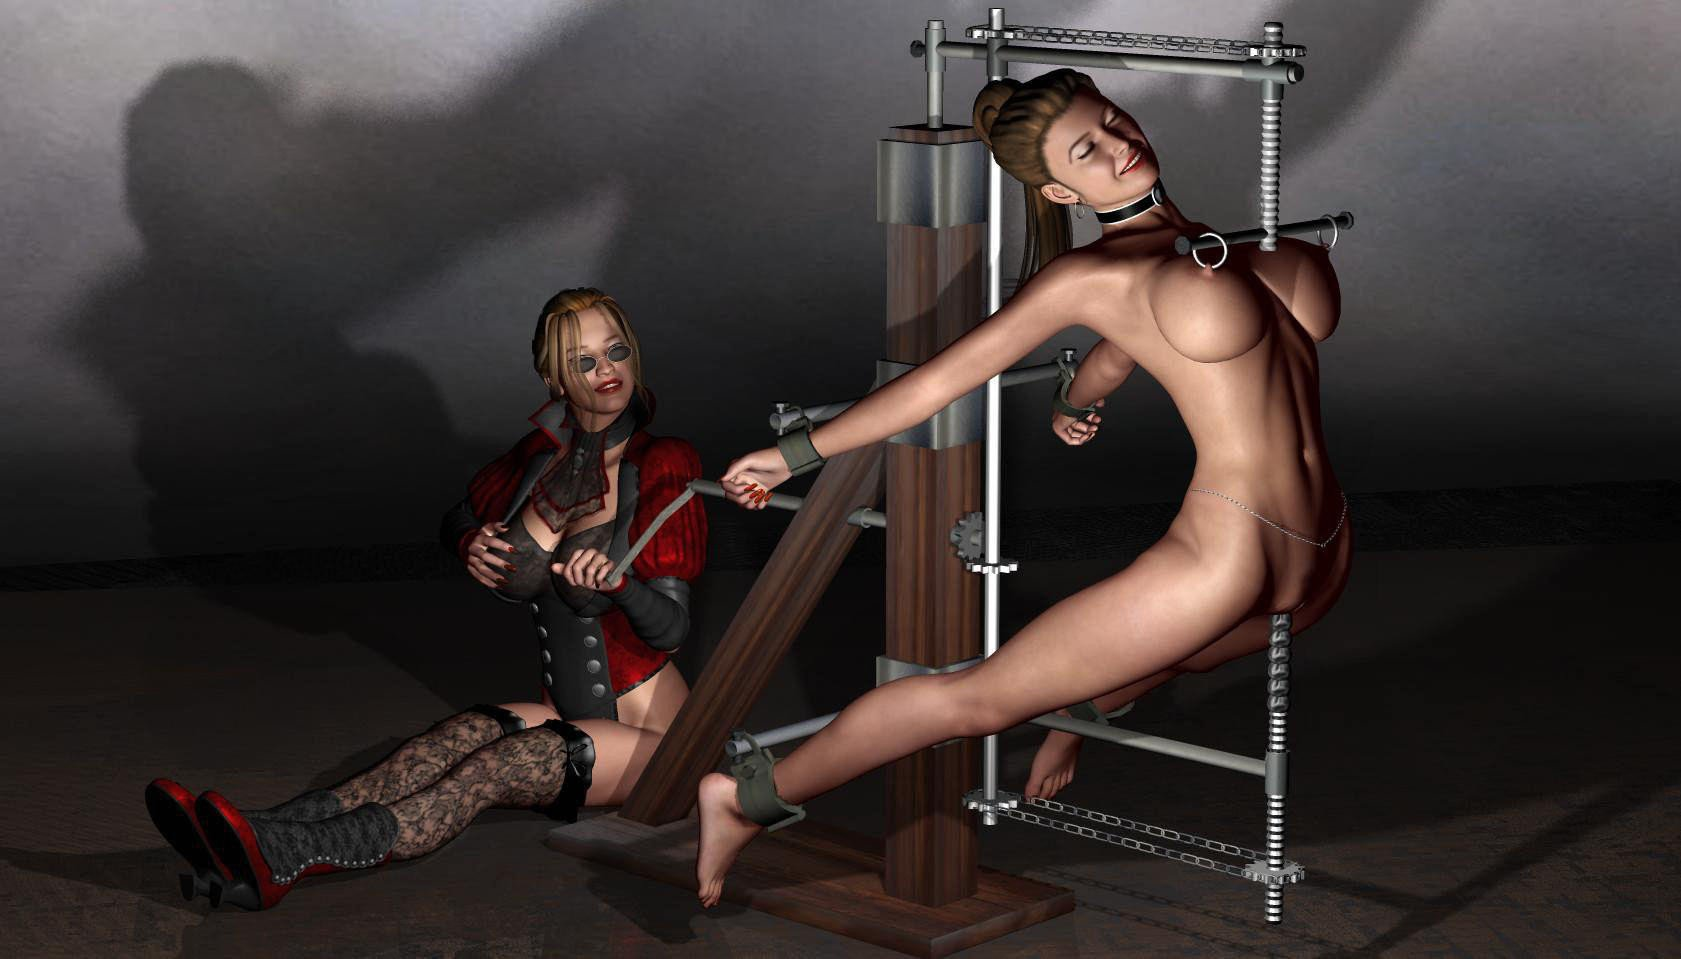 Female submissive bdsm art